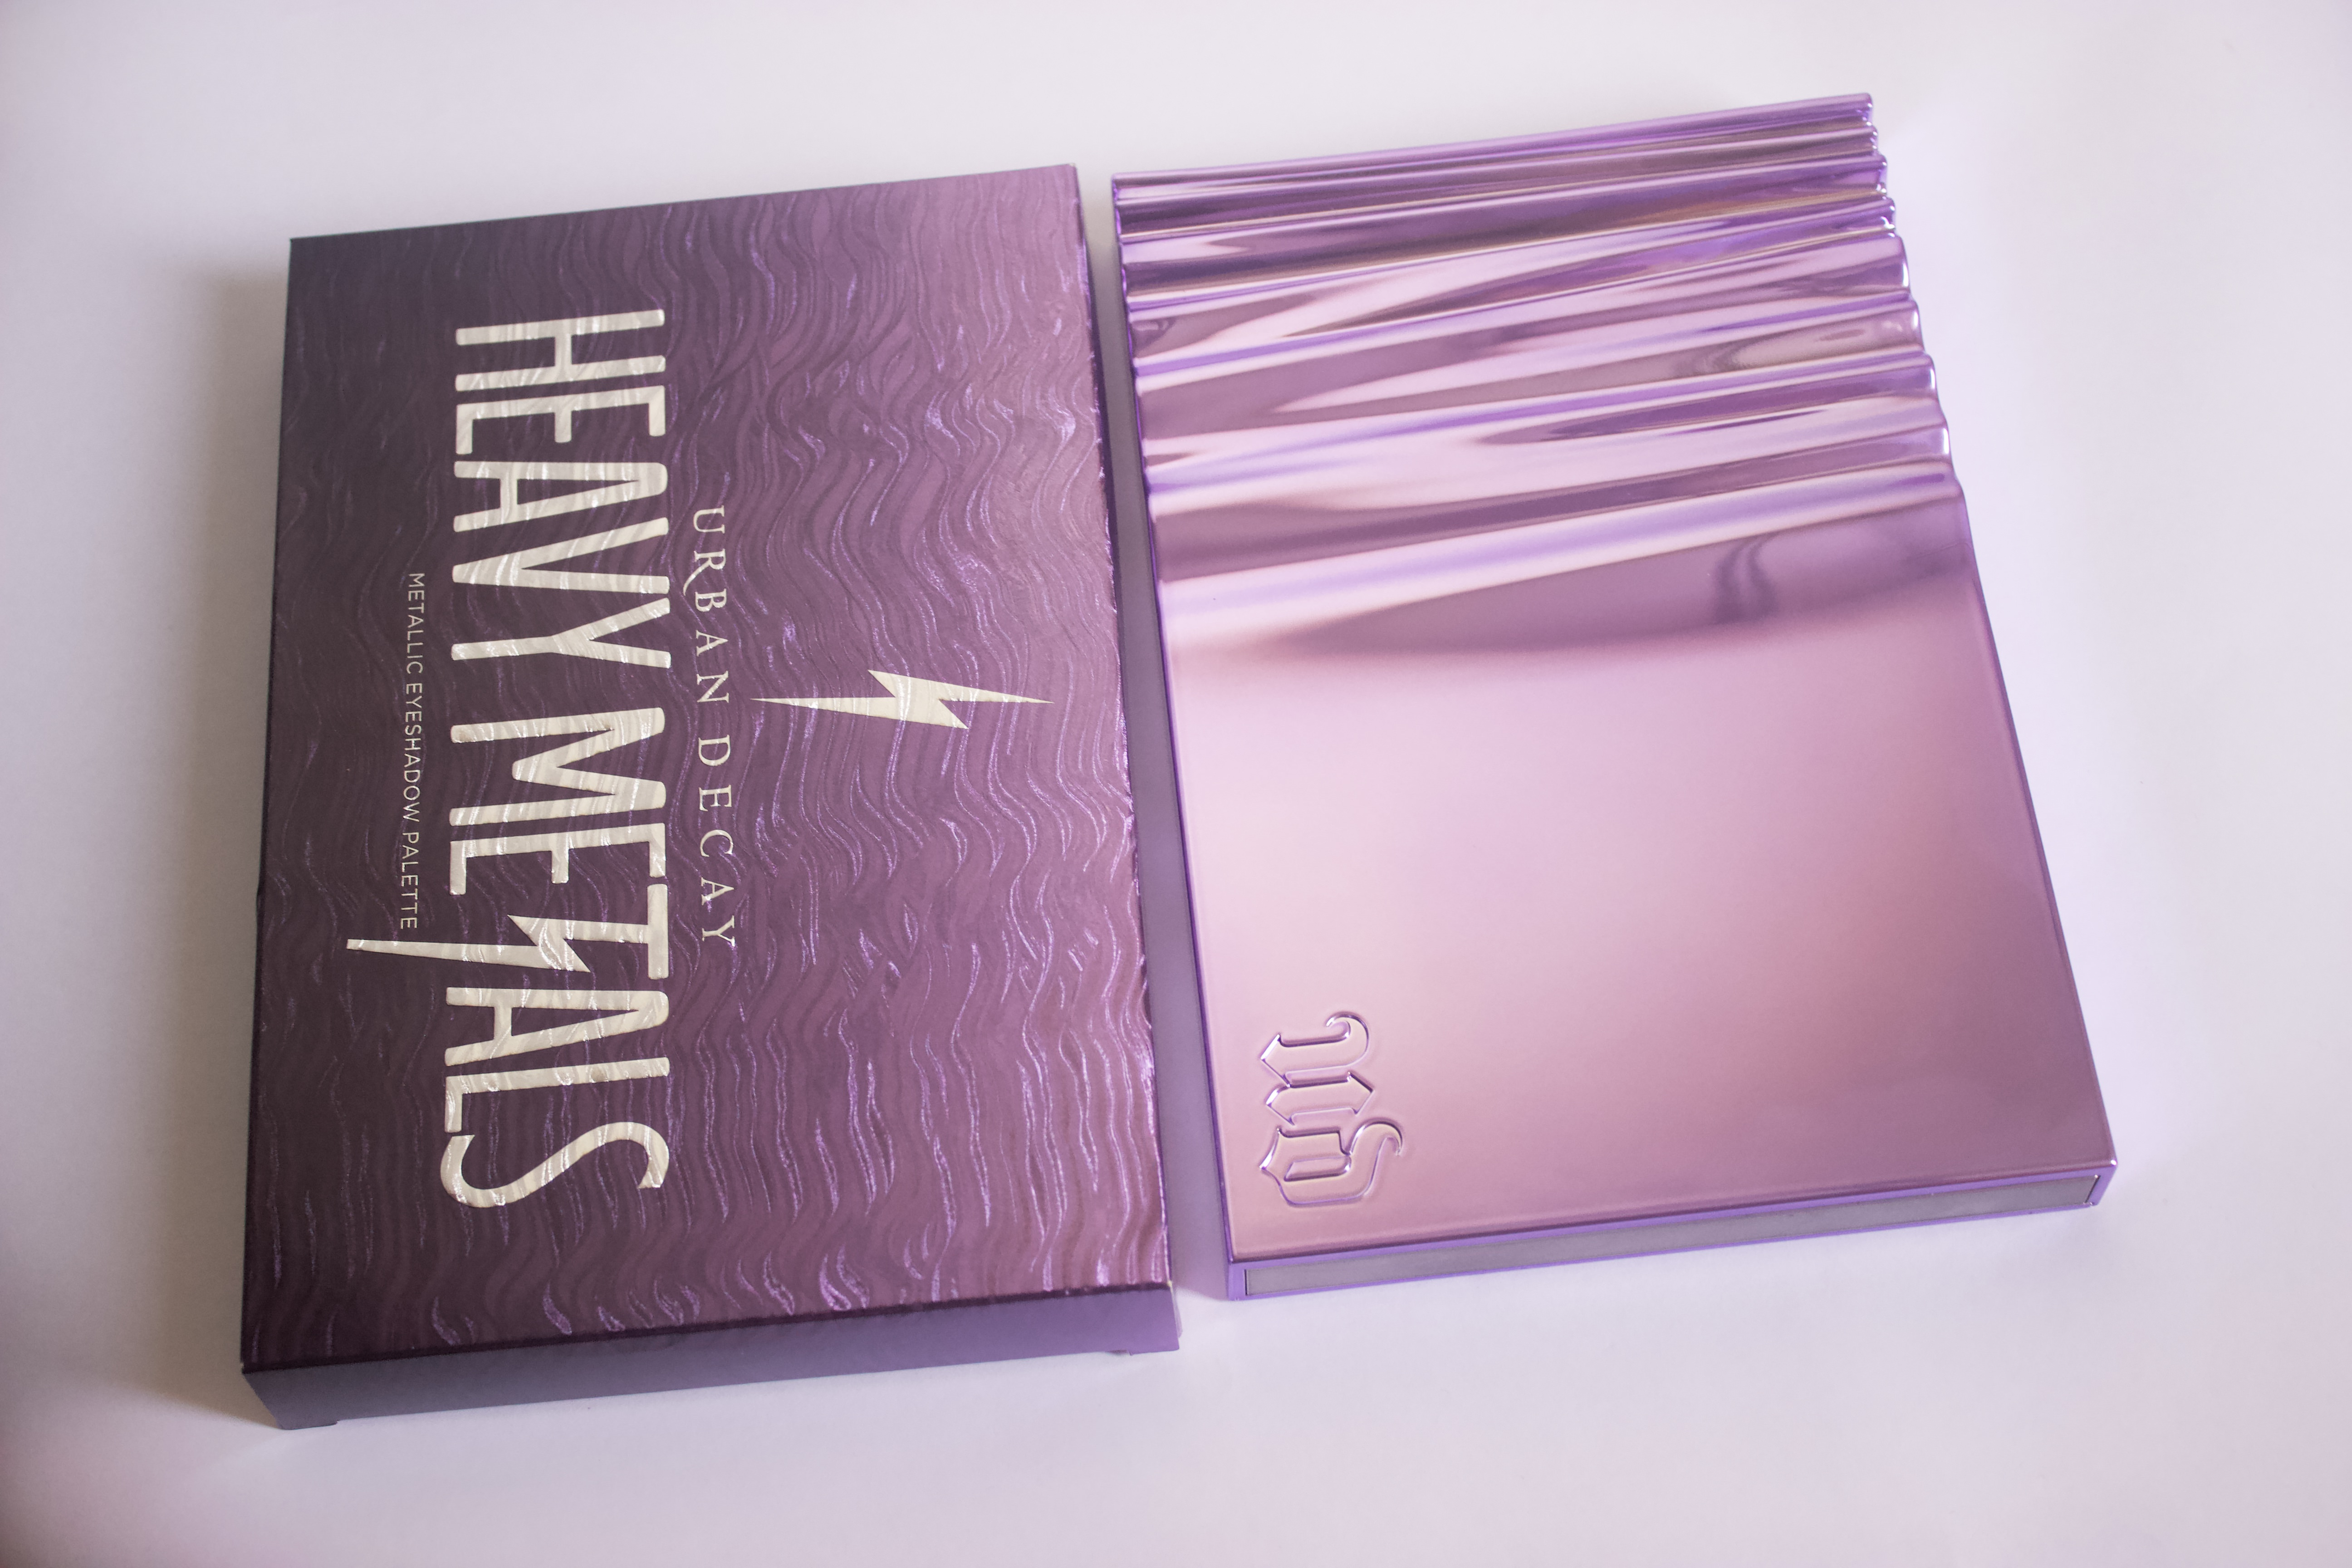 Urban Decay Heavy metals eyeshadows